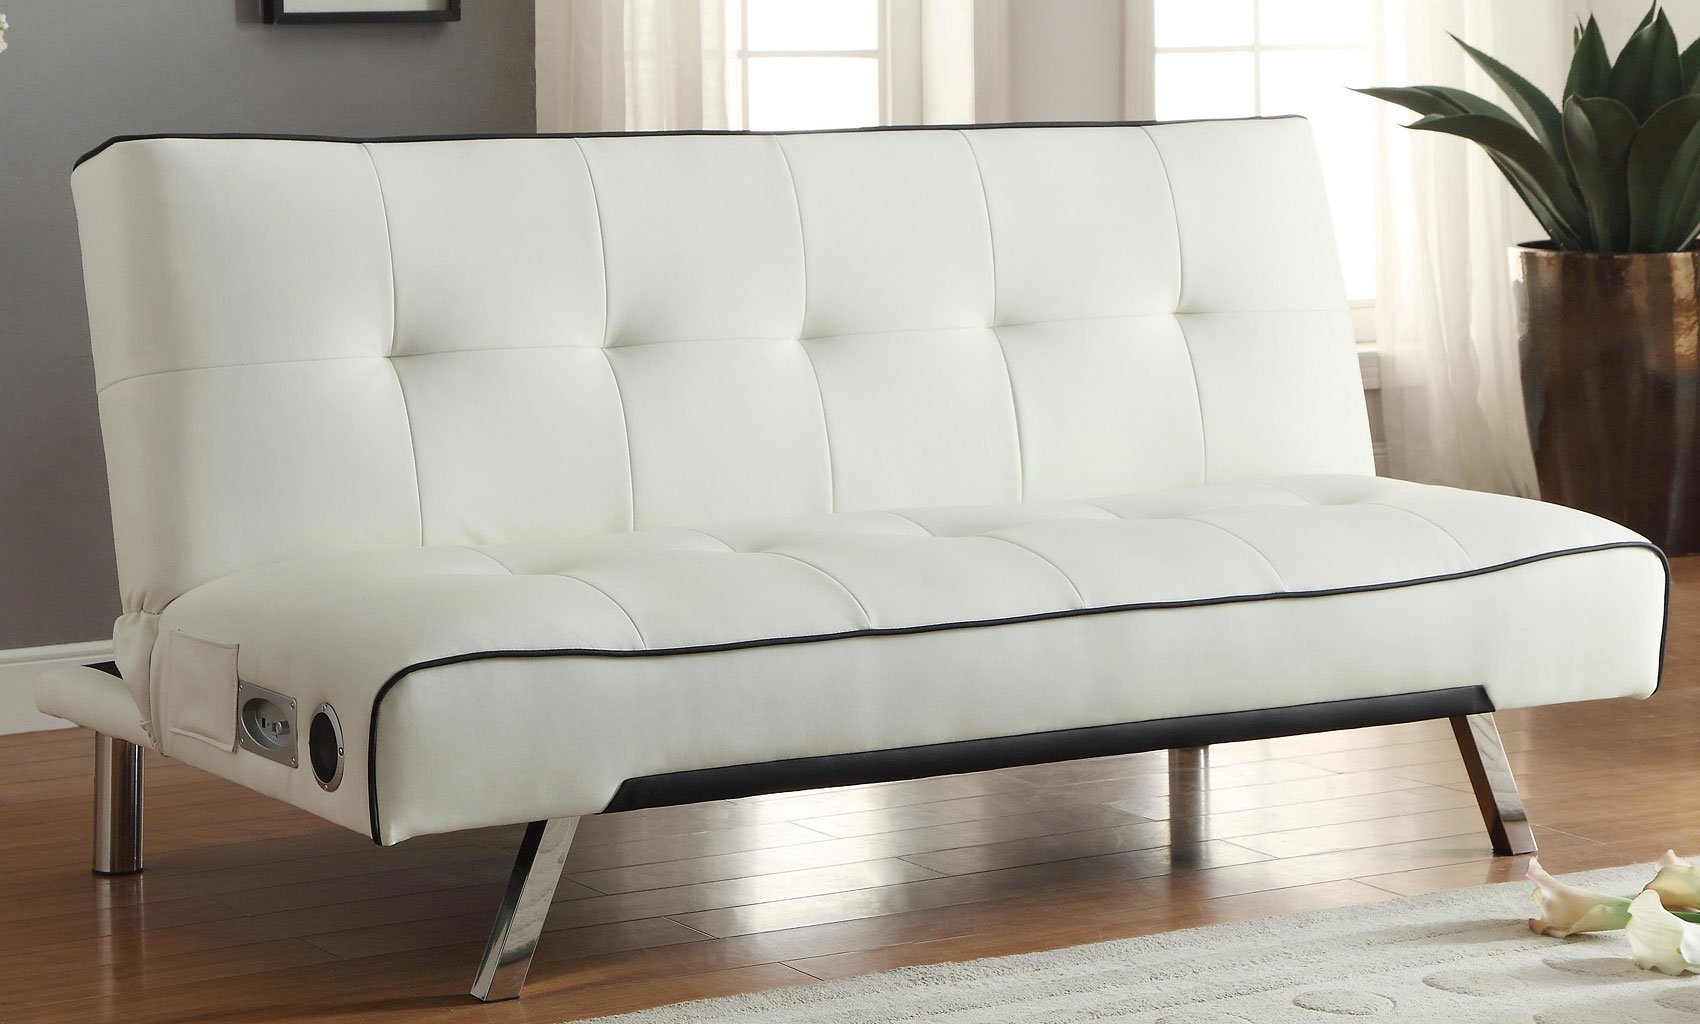 White Sofa Bed W Bluetooth Connectivity Futons Living Room Furniture Living Room